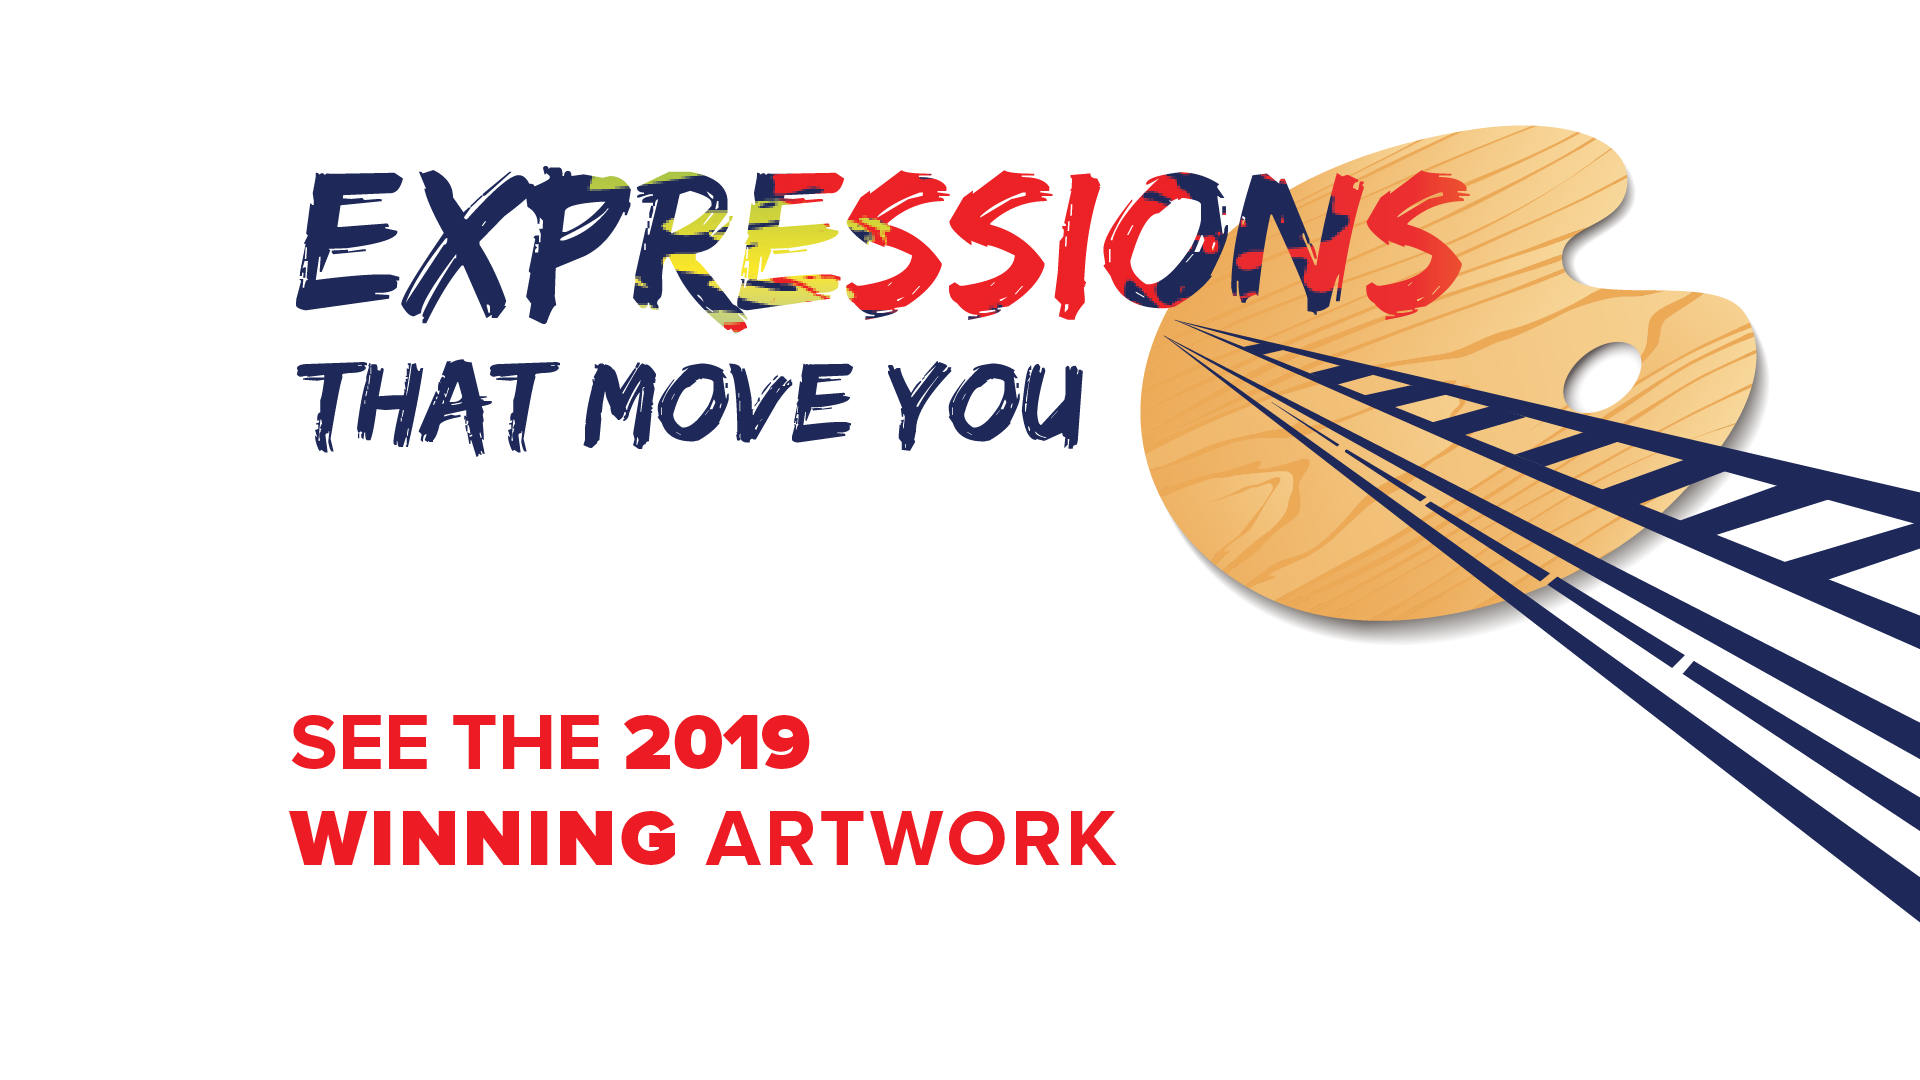 Expressions that move you logo